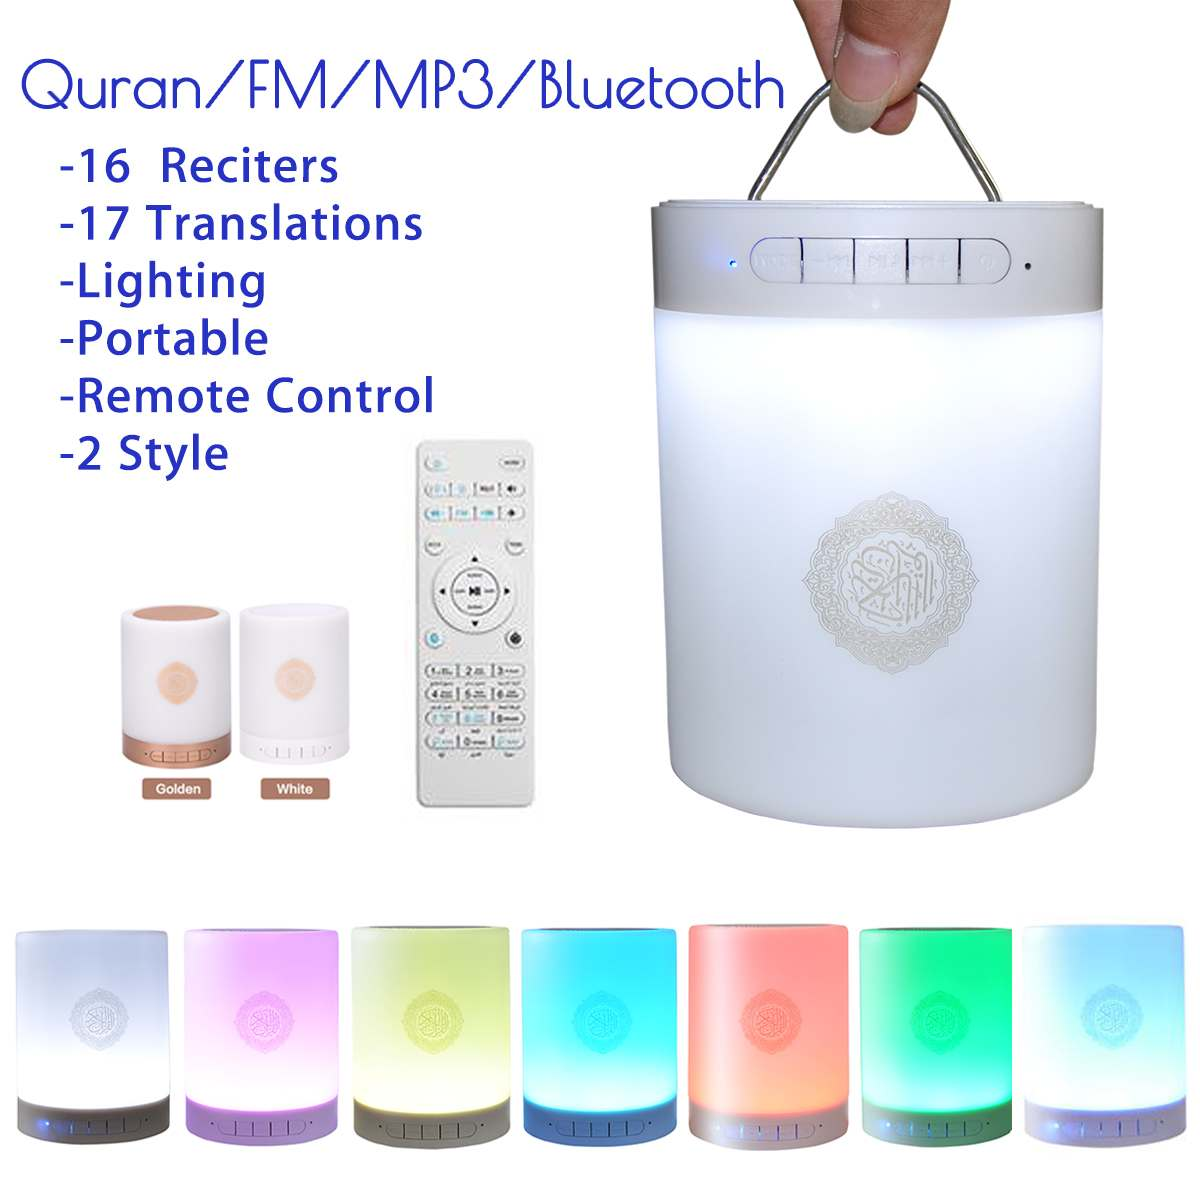 Wireless Remote Control Protable bluetooth Speaker Ramadan Quran Speakers MP3 FM Radio Speaker Touchs LED Lamp With 17 LanguagesWireless Remote Control Protable bluetooth Speaker Ramadan Quran Speakers MP3 FM Radio Speaker Touchs LED Lamp With 17 Languages